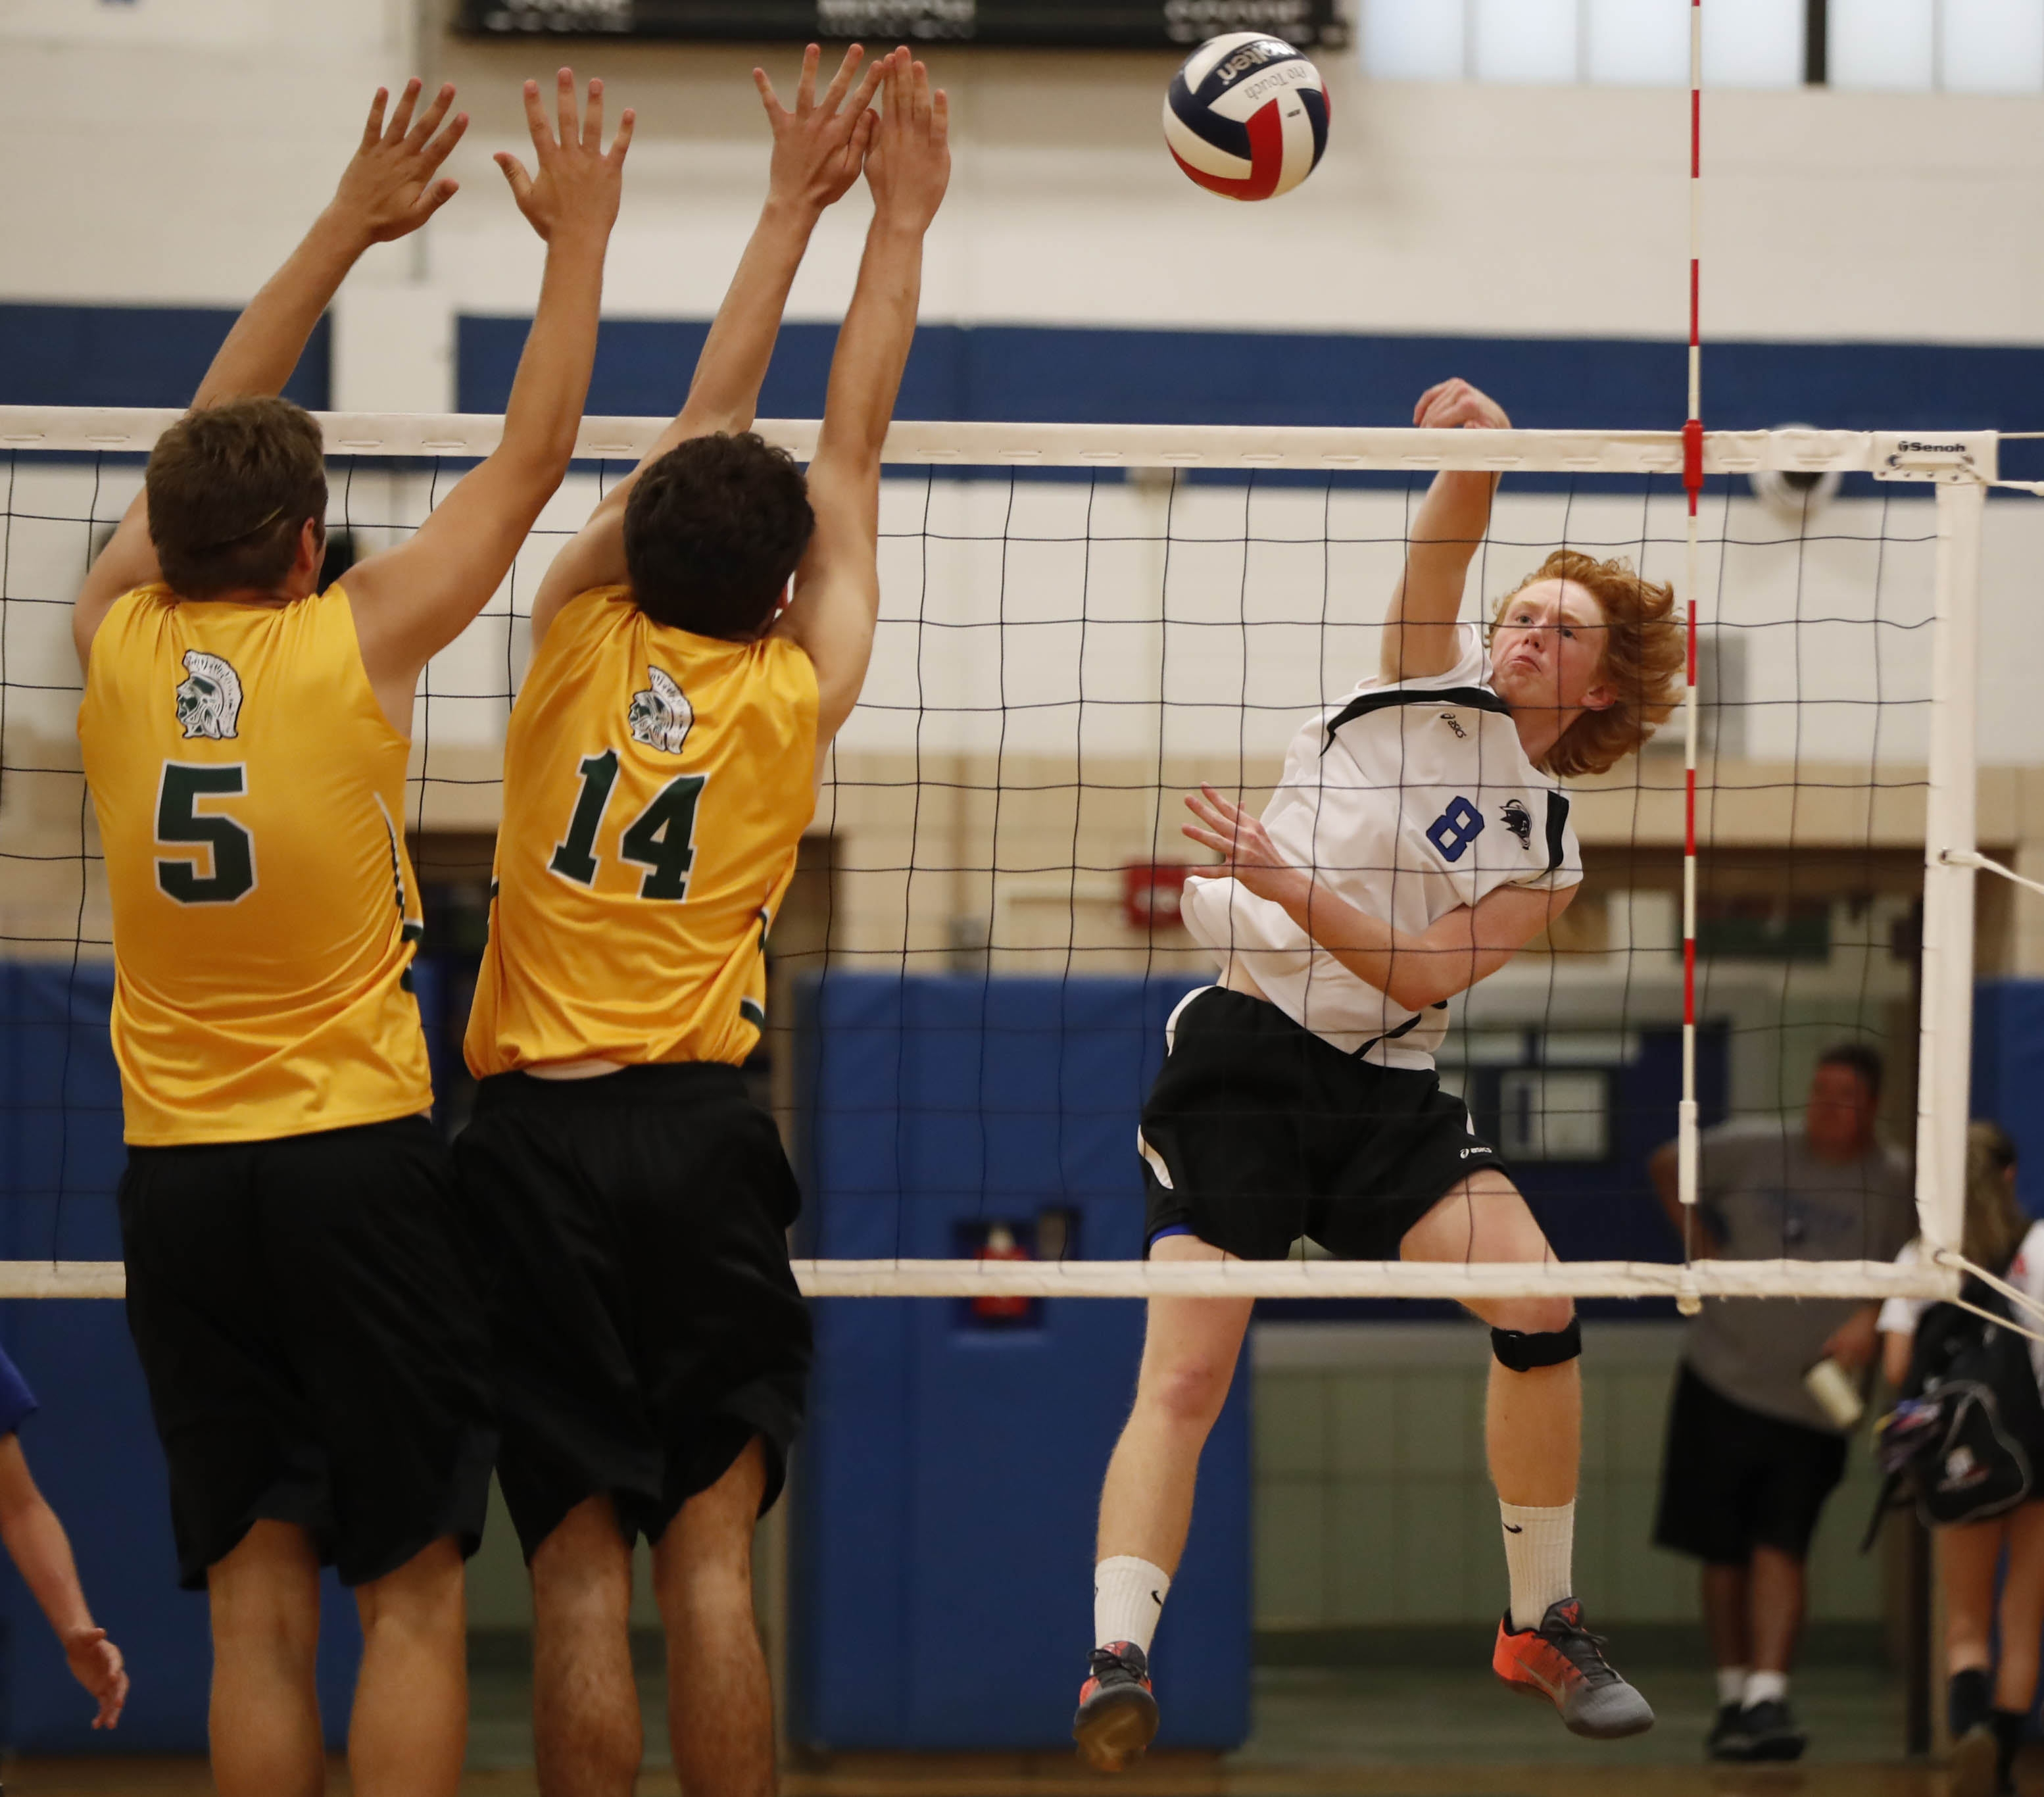 Frontier's Owen Bean hits a ball against two Williamsville North blockers during the first game of the match won by the Falcons.